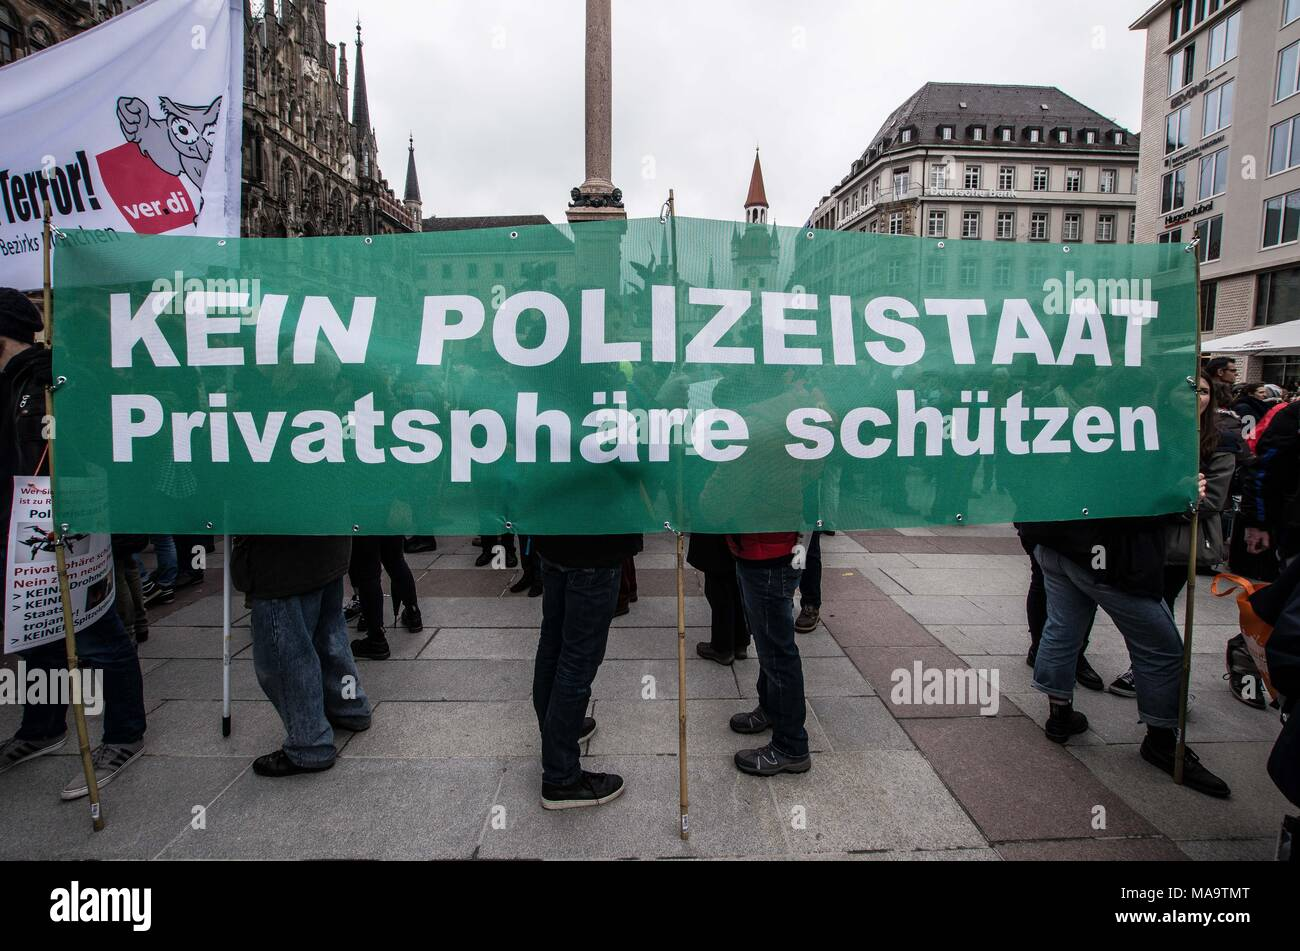 Munich, Bavaria, Germany. 31st Mar, 2018. ''No police state.protect private spheres'' referrring to the Polizeiaufgabengesetz (police assignment laws) of Bavaria, which, when ratified, will present what are called ''the toughest police laws since 1945'', giving the Bavarian police virtually unlimited power to perform surveillance and hold anyone without charges for up to three months, which can be extended to indefinitely. Critics have analyzed the laws and have stated the following: police may read paper and Email, save, delete, or freely alter said private data, they may wiretap convers - Stock Image